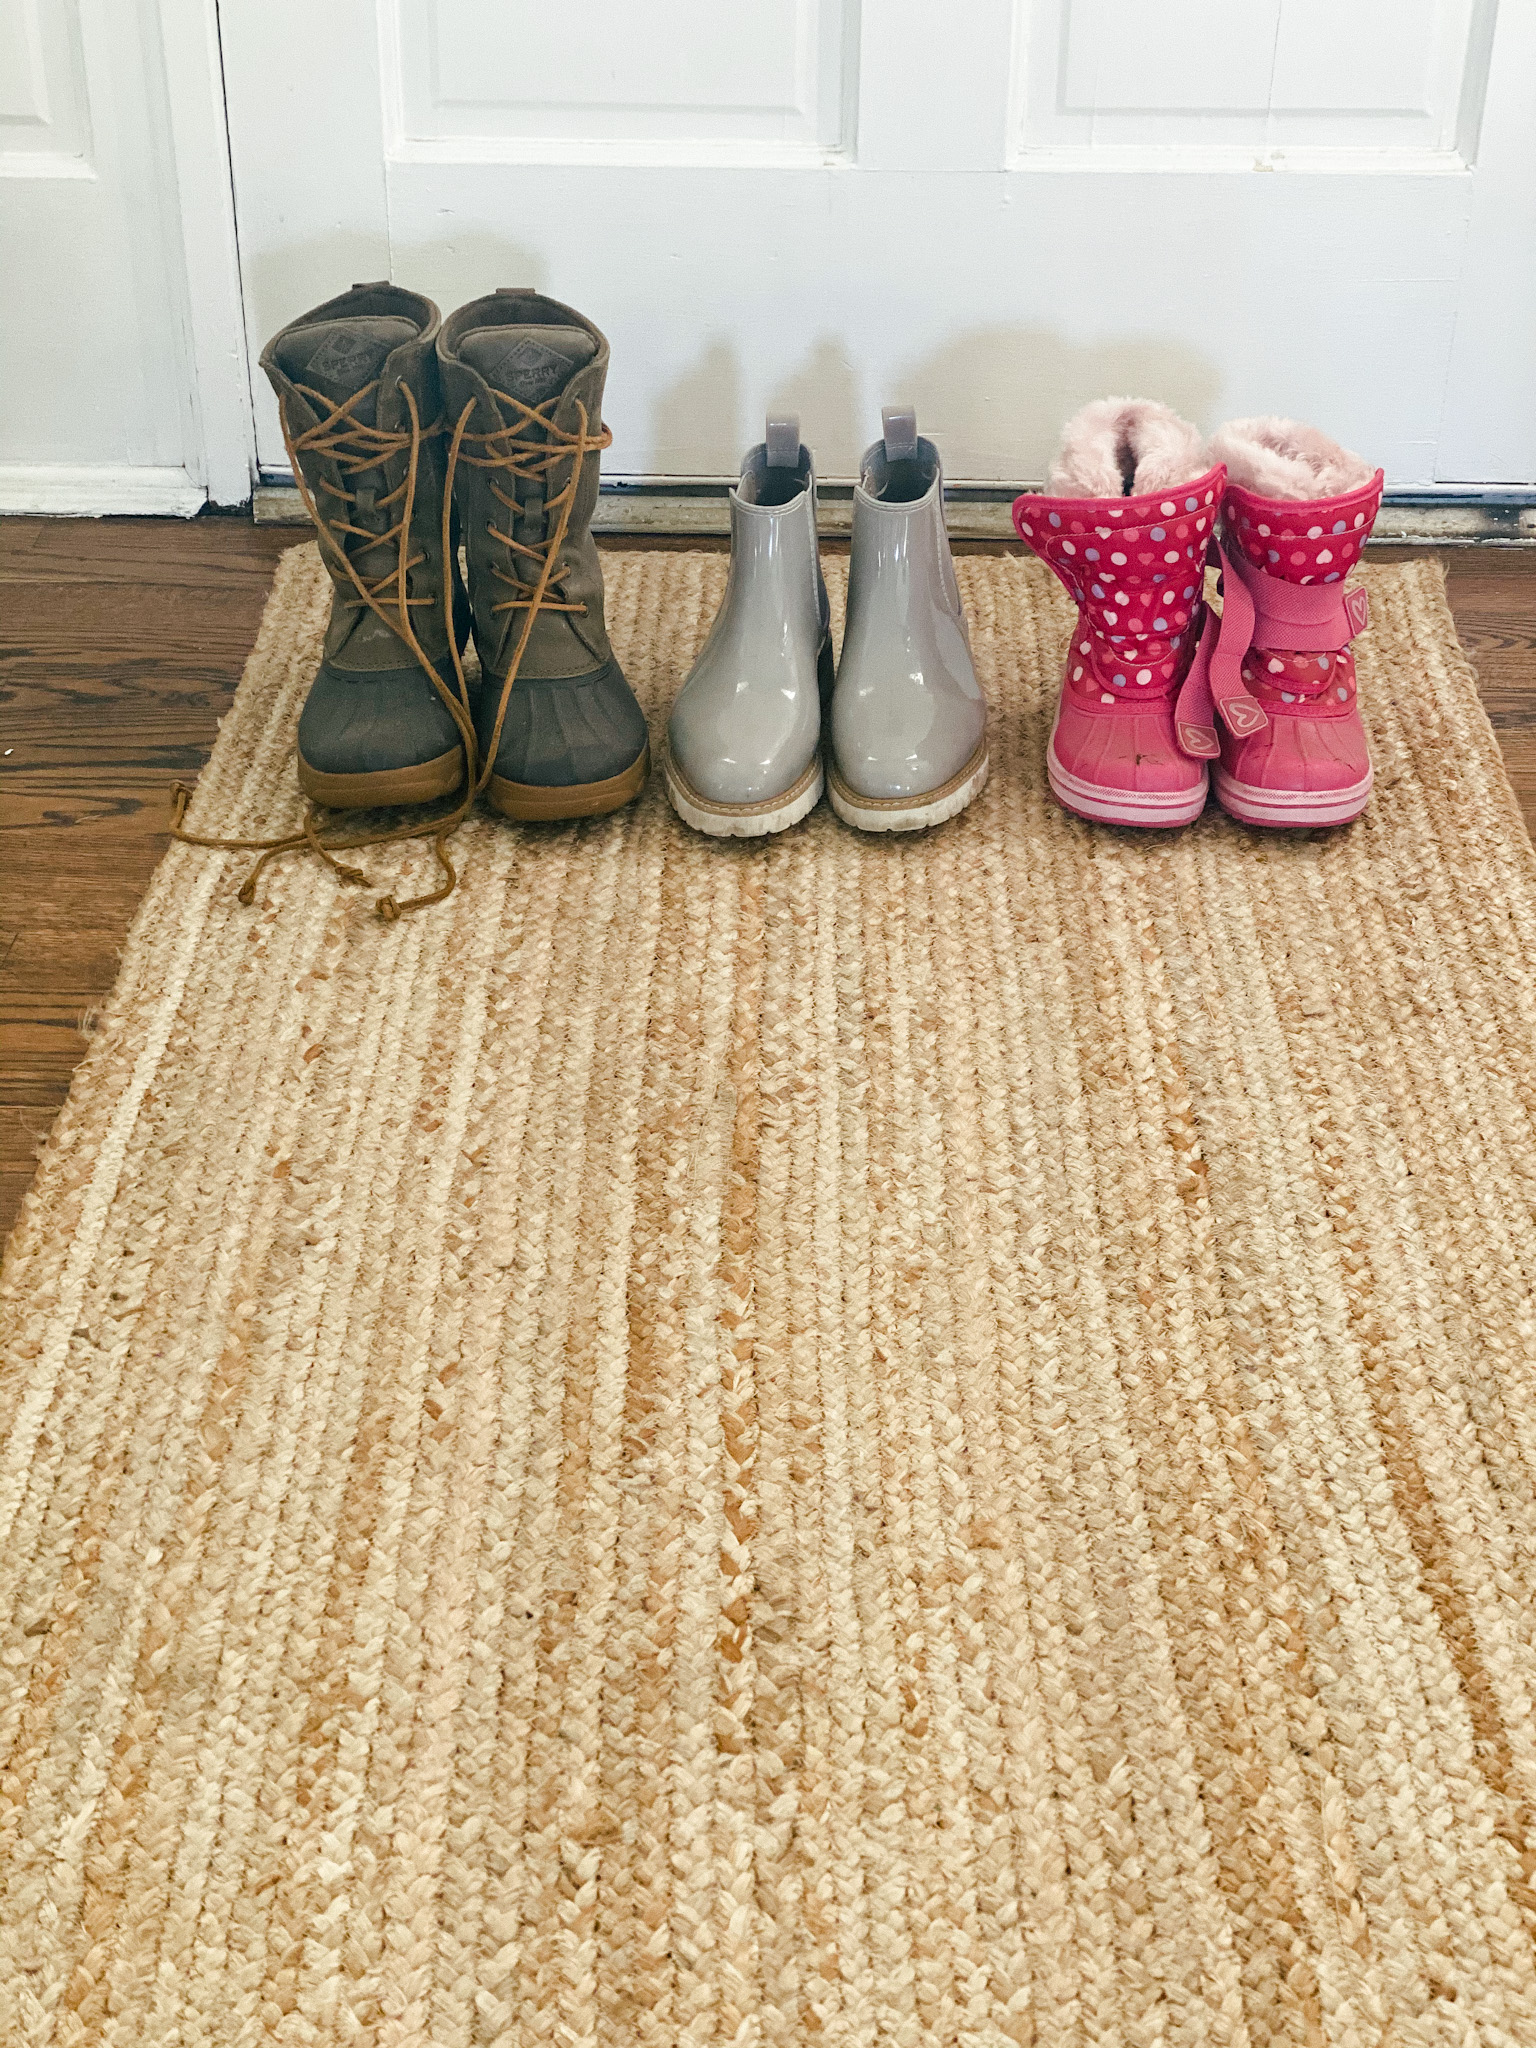 How to keep floors clean in the wintertime